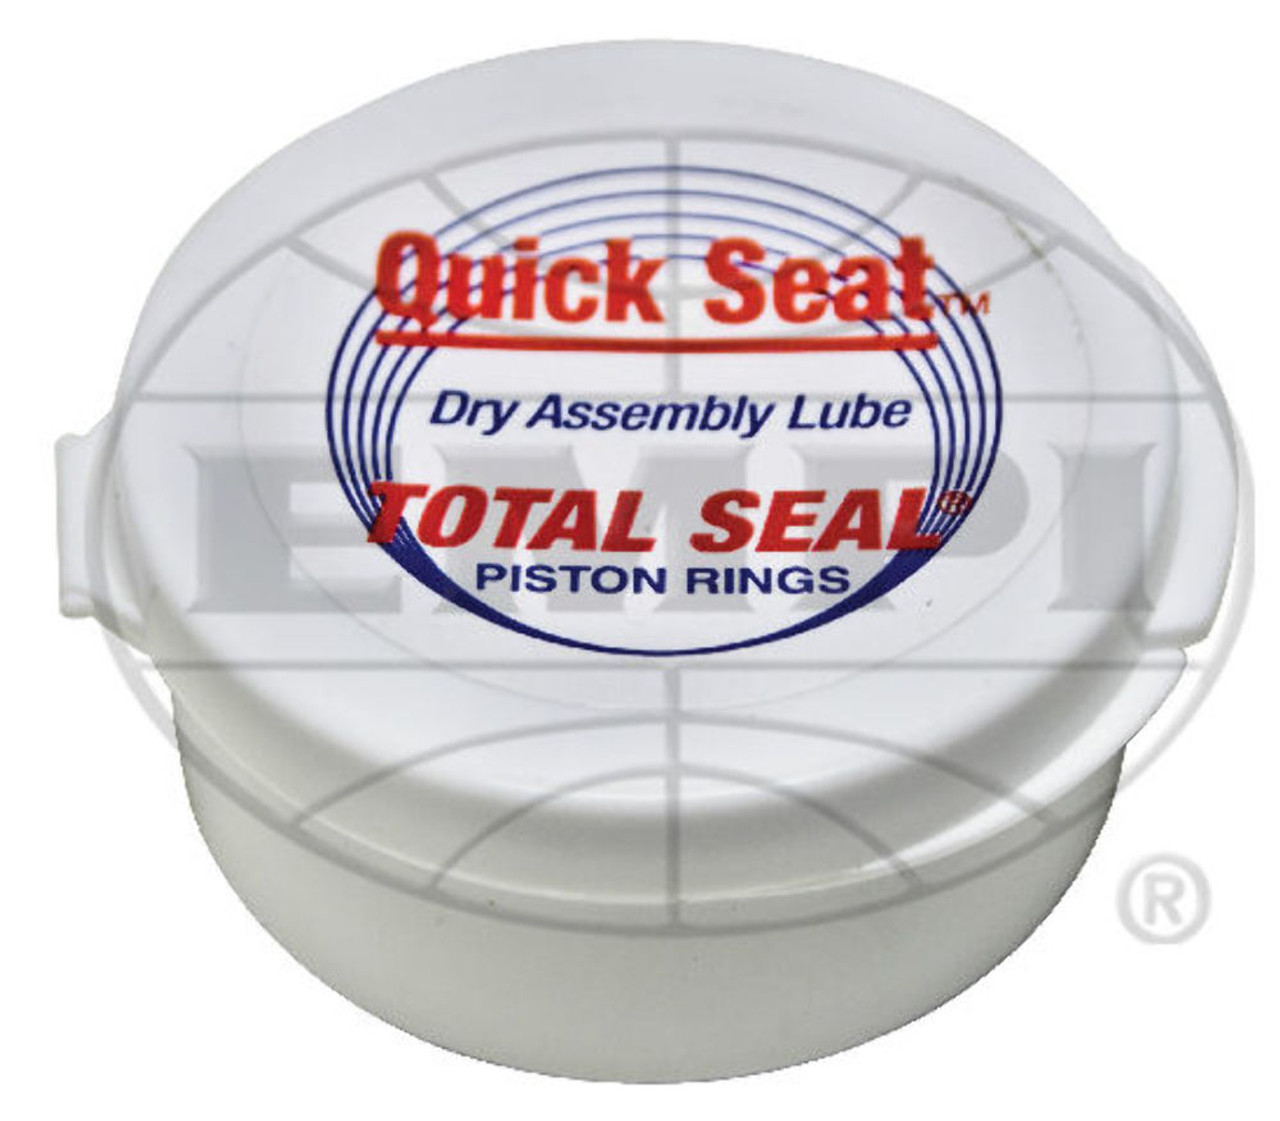 Total Seal 'Quickseat' Dry Film Powder For Piston Rings, Fit VW Air Cooled